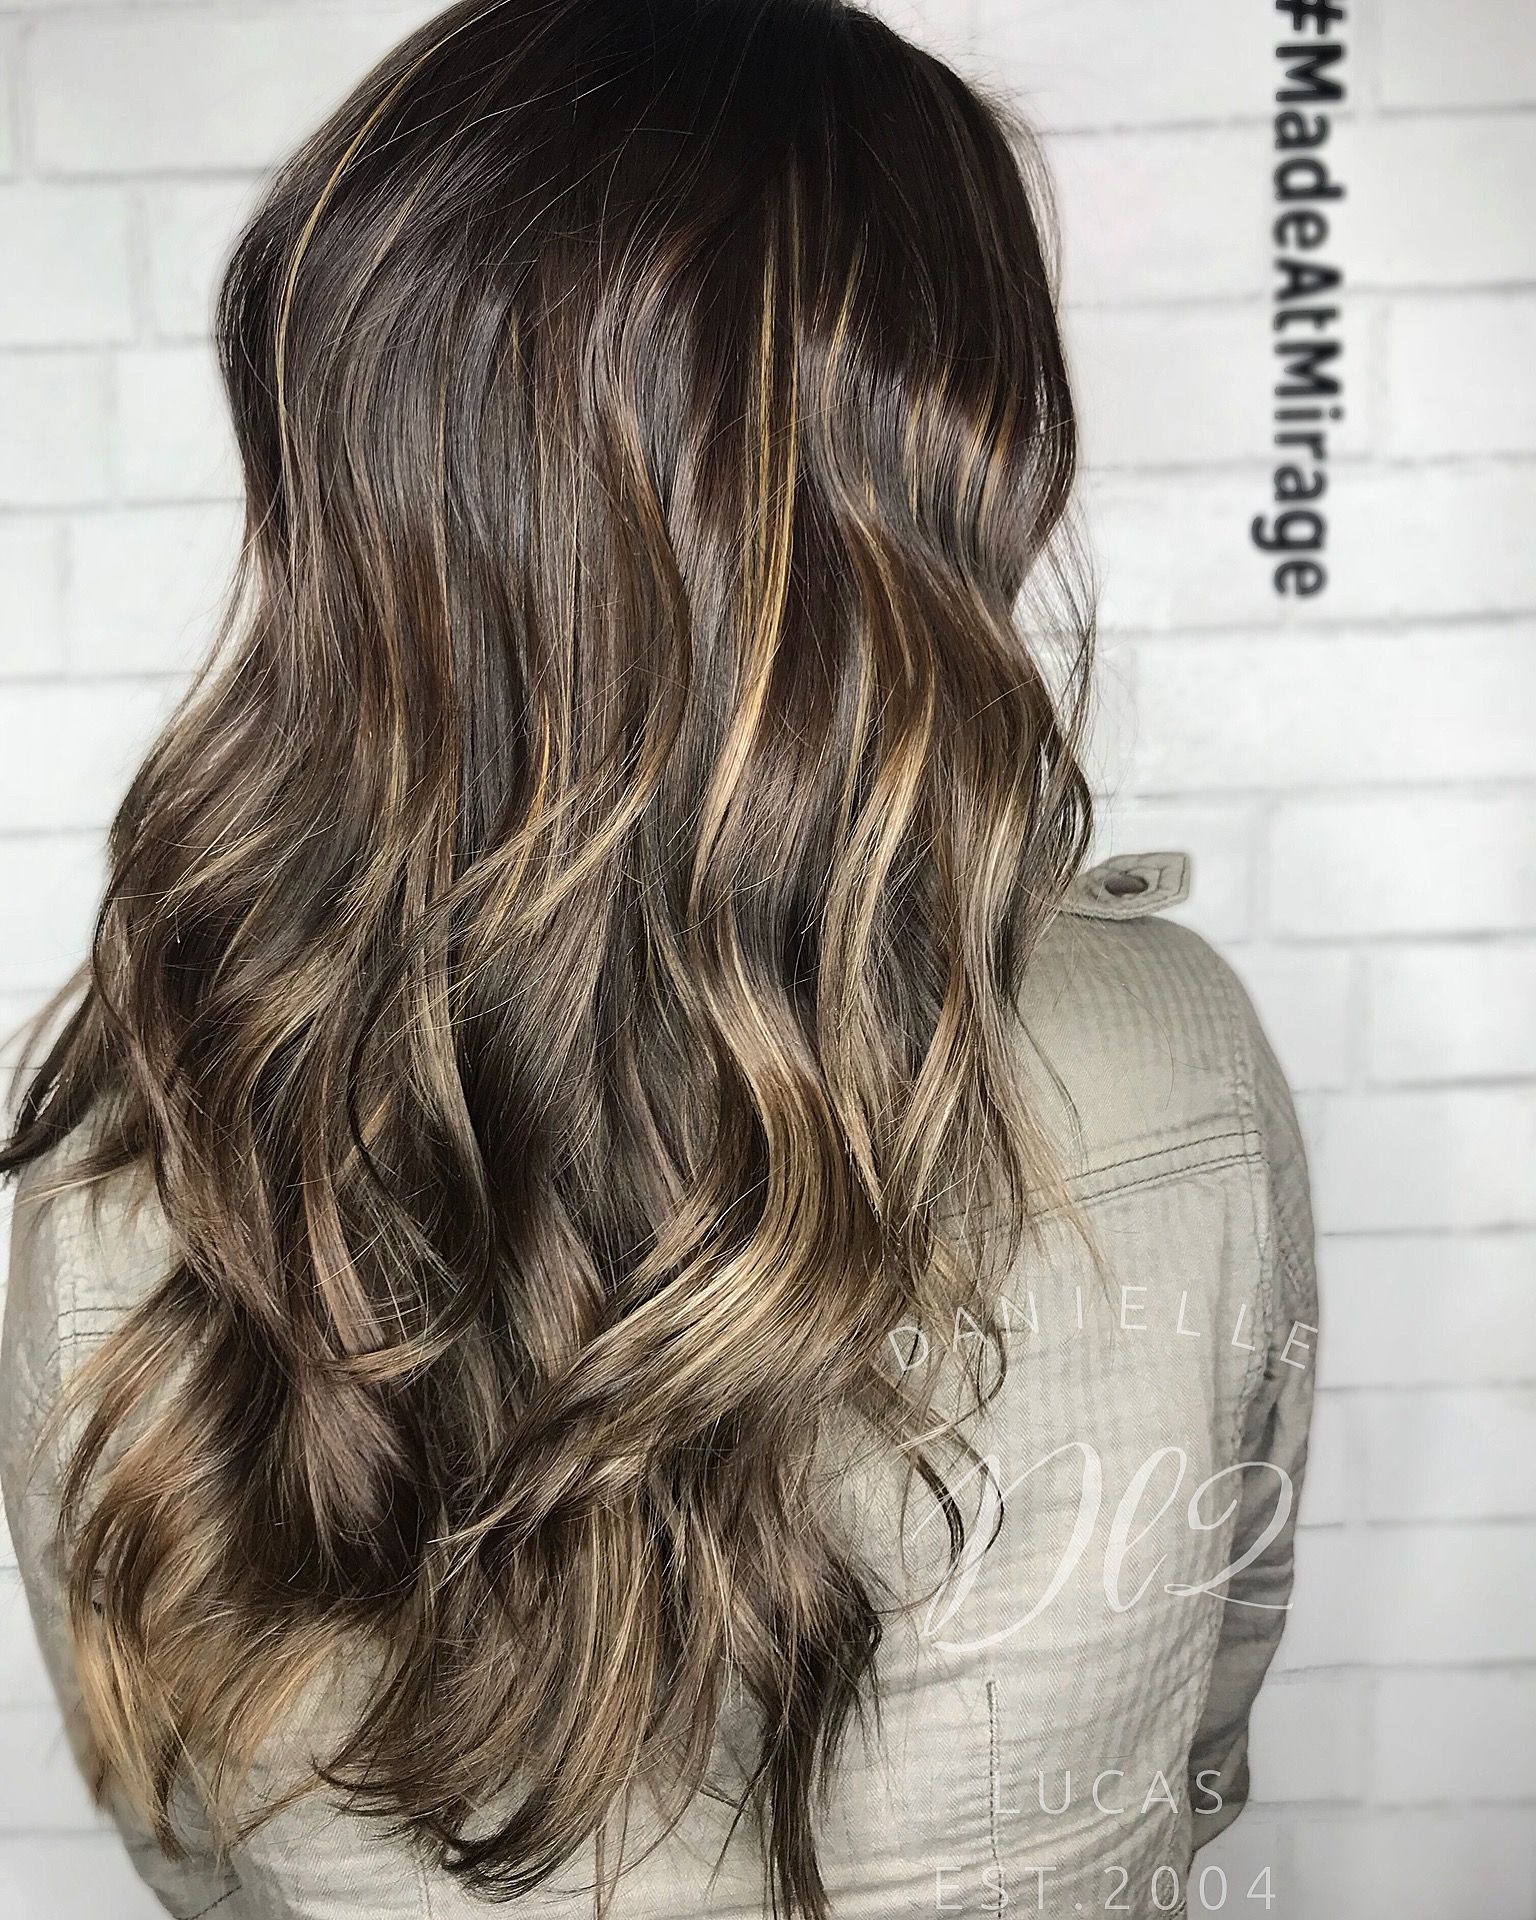 Reverse balayage From blonde back to brunette Hair by